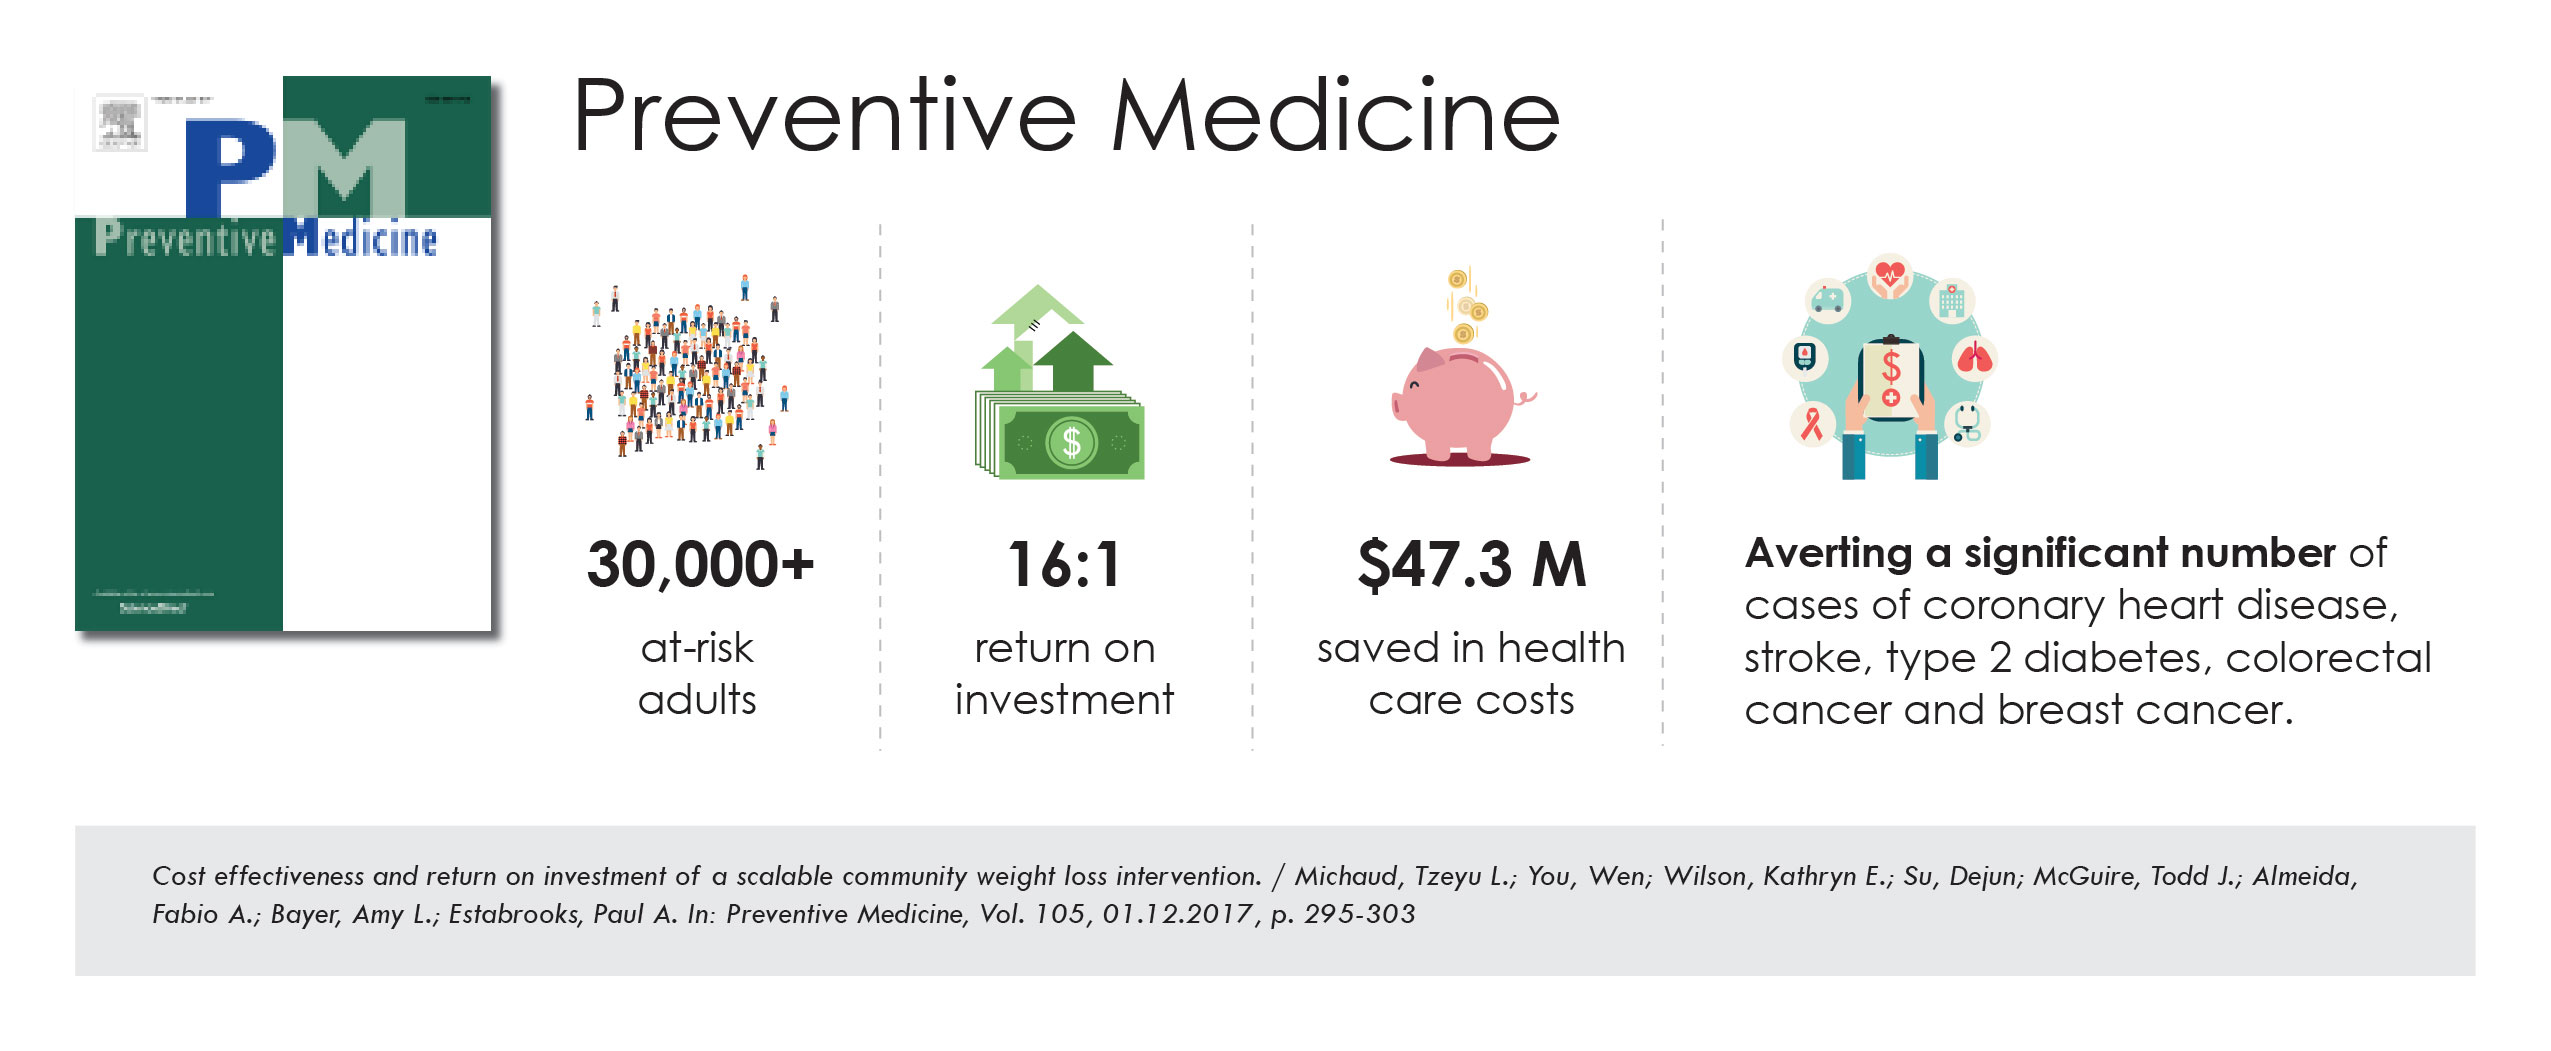 Published in Preventive Medicine, researchers projected a 16:1 ROI across all race and ethnicities, saving the insurance payer an estimated $47.3 million over the study population's lifetime.